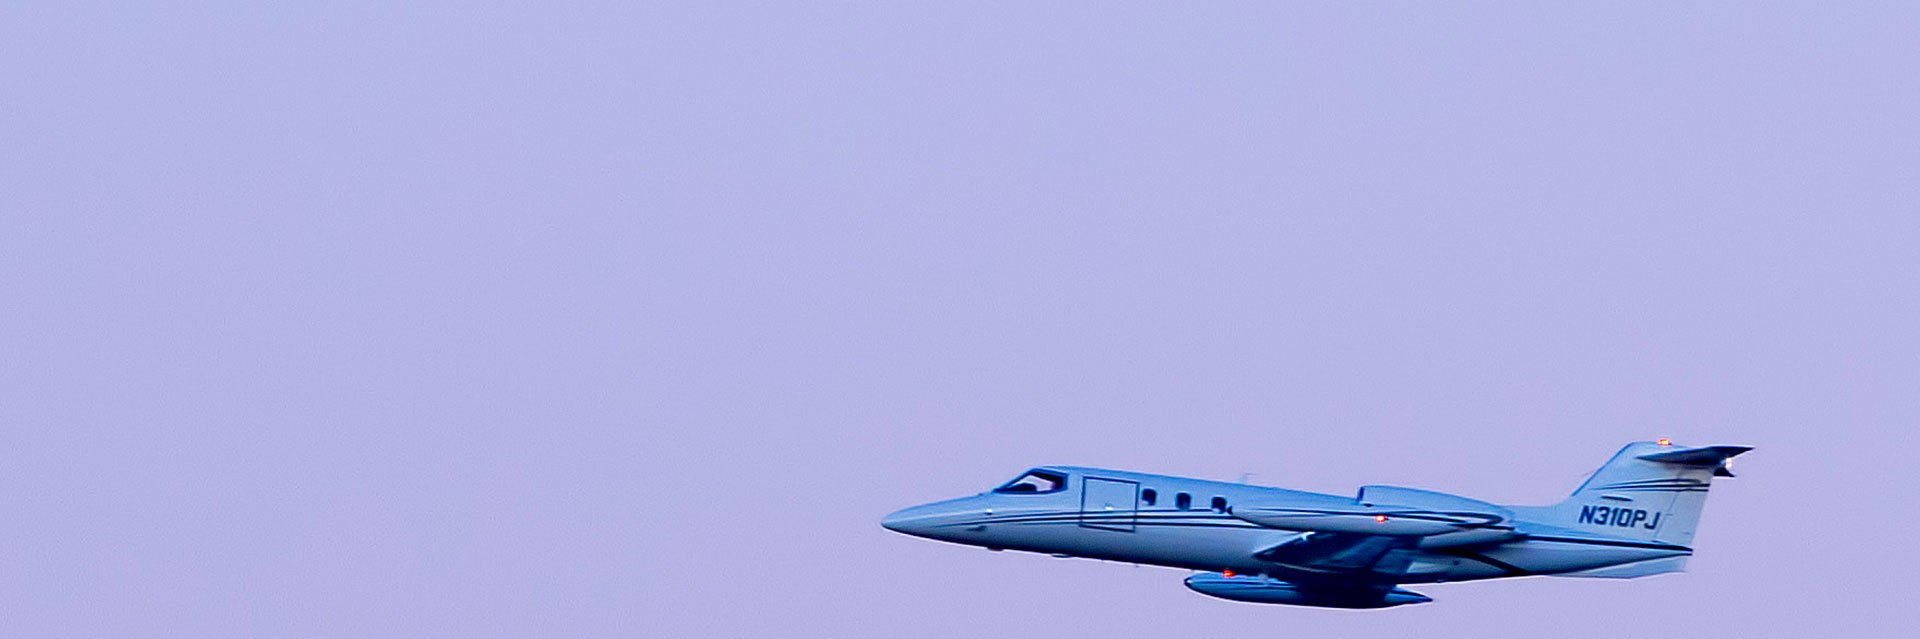 Medically configured air ambulance learjet flying in the sky